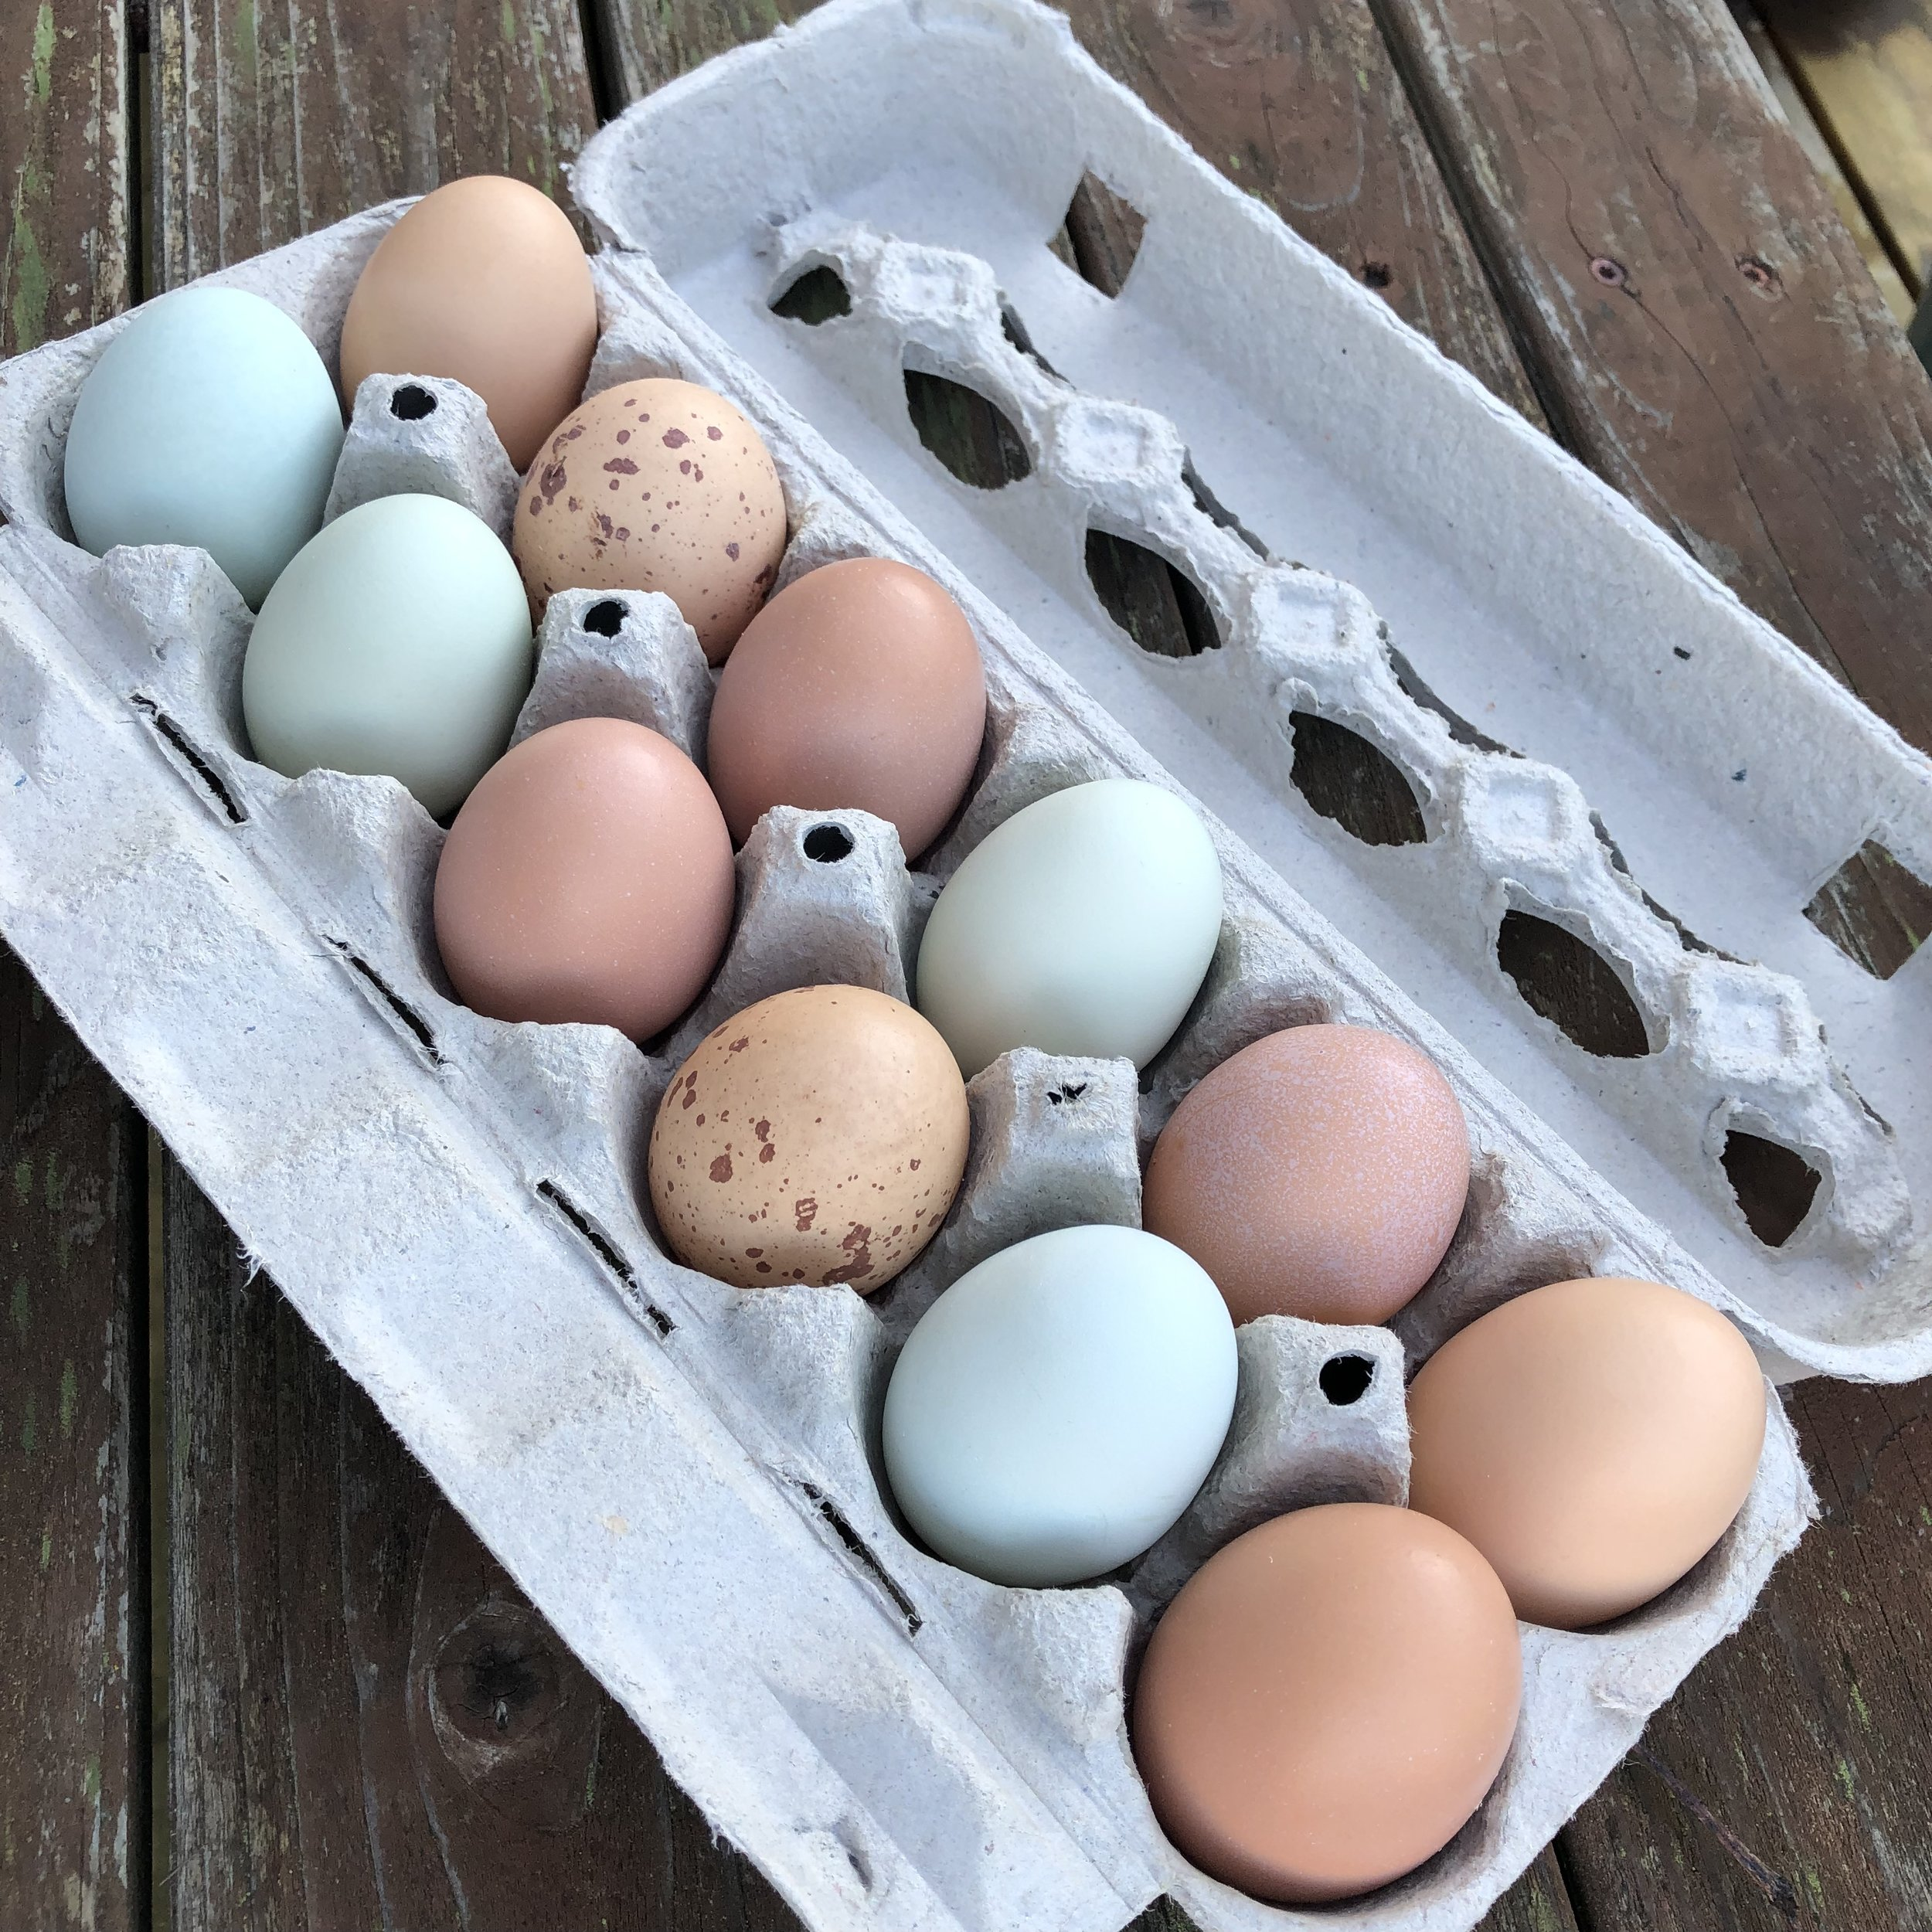 A carton of fresh eggs that are brown, tan with brown spots, and blue.